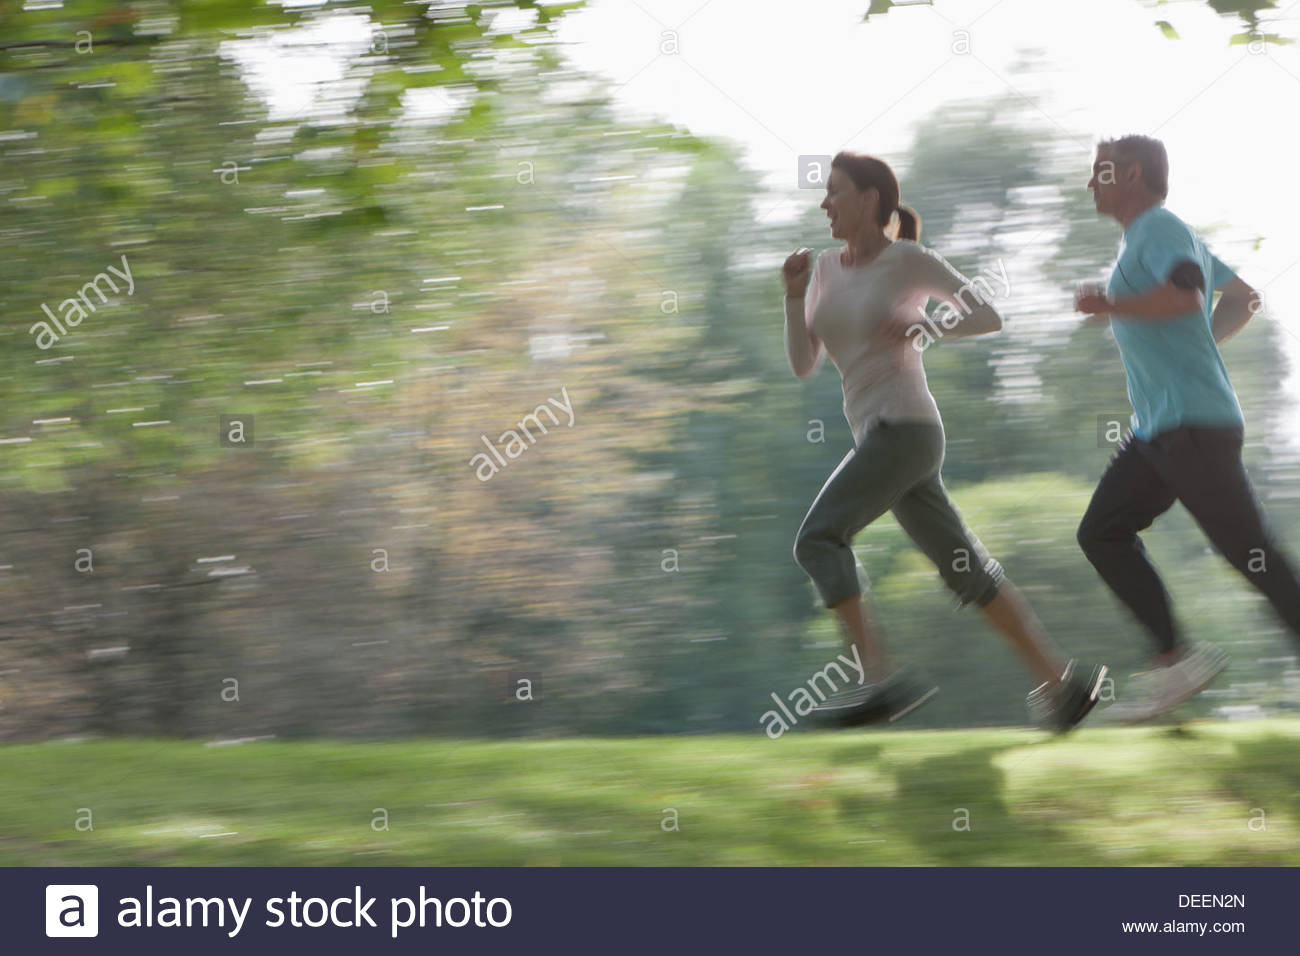 Couple running together - Stock Image